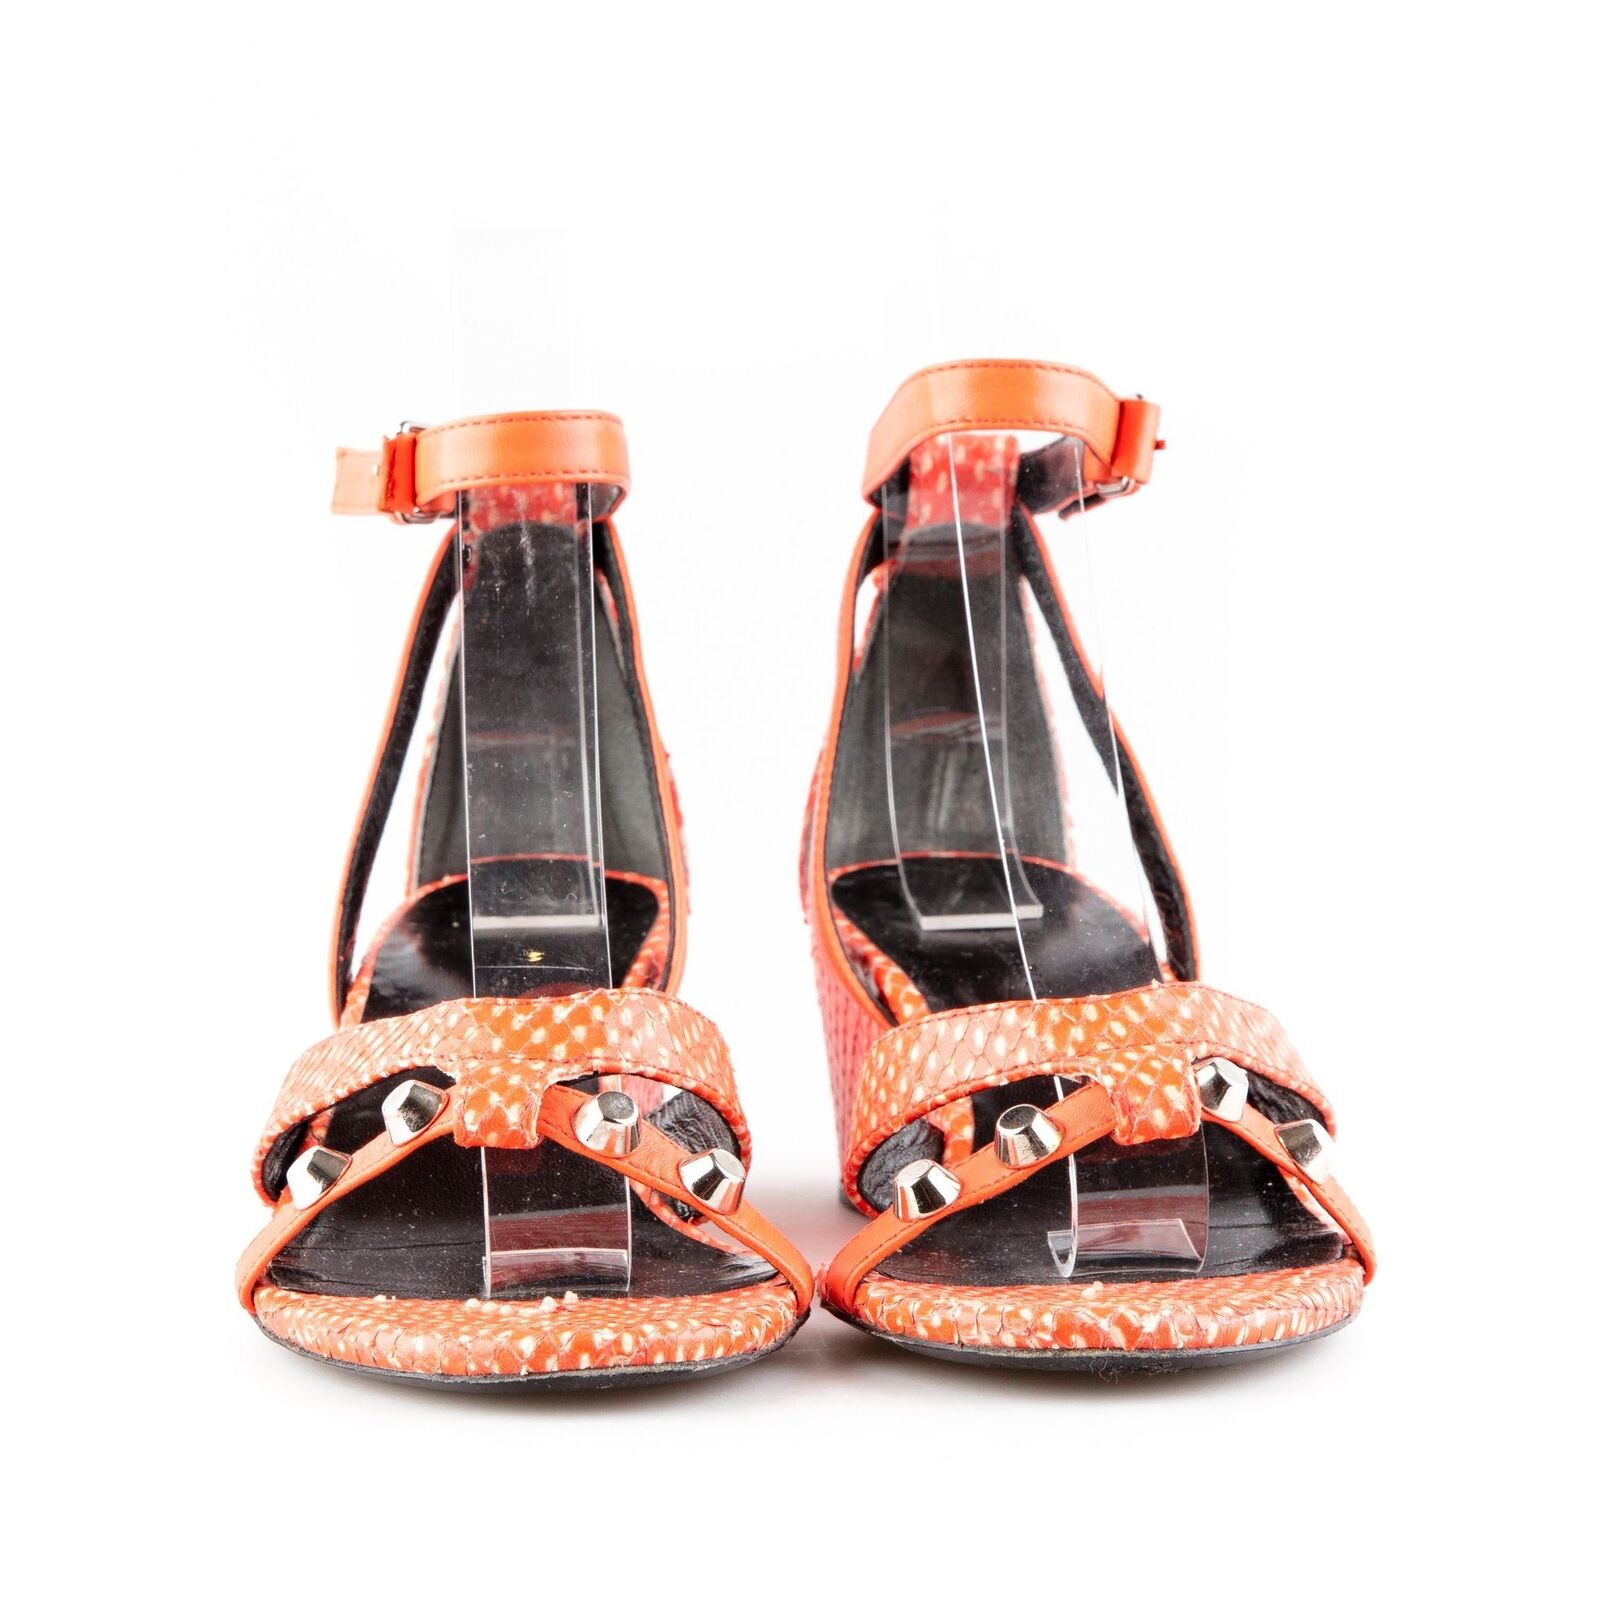 Balenciaga Balenciaga Balenciaga arancia Leather Wedge Strappy Sandals - Dimensione 36.5 163211